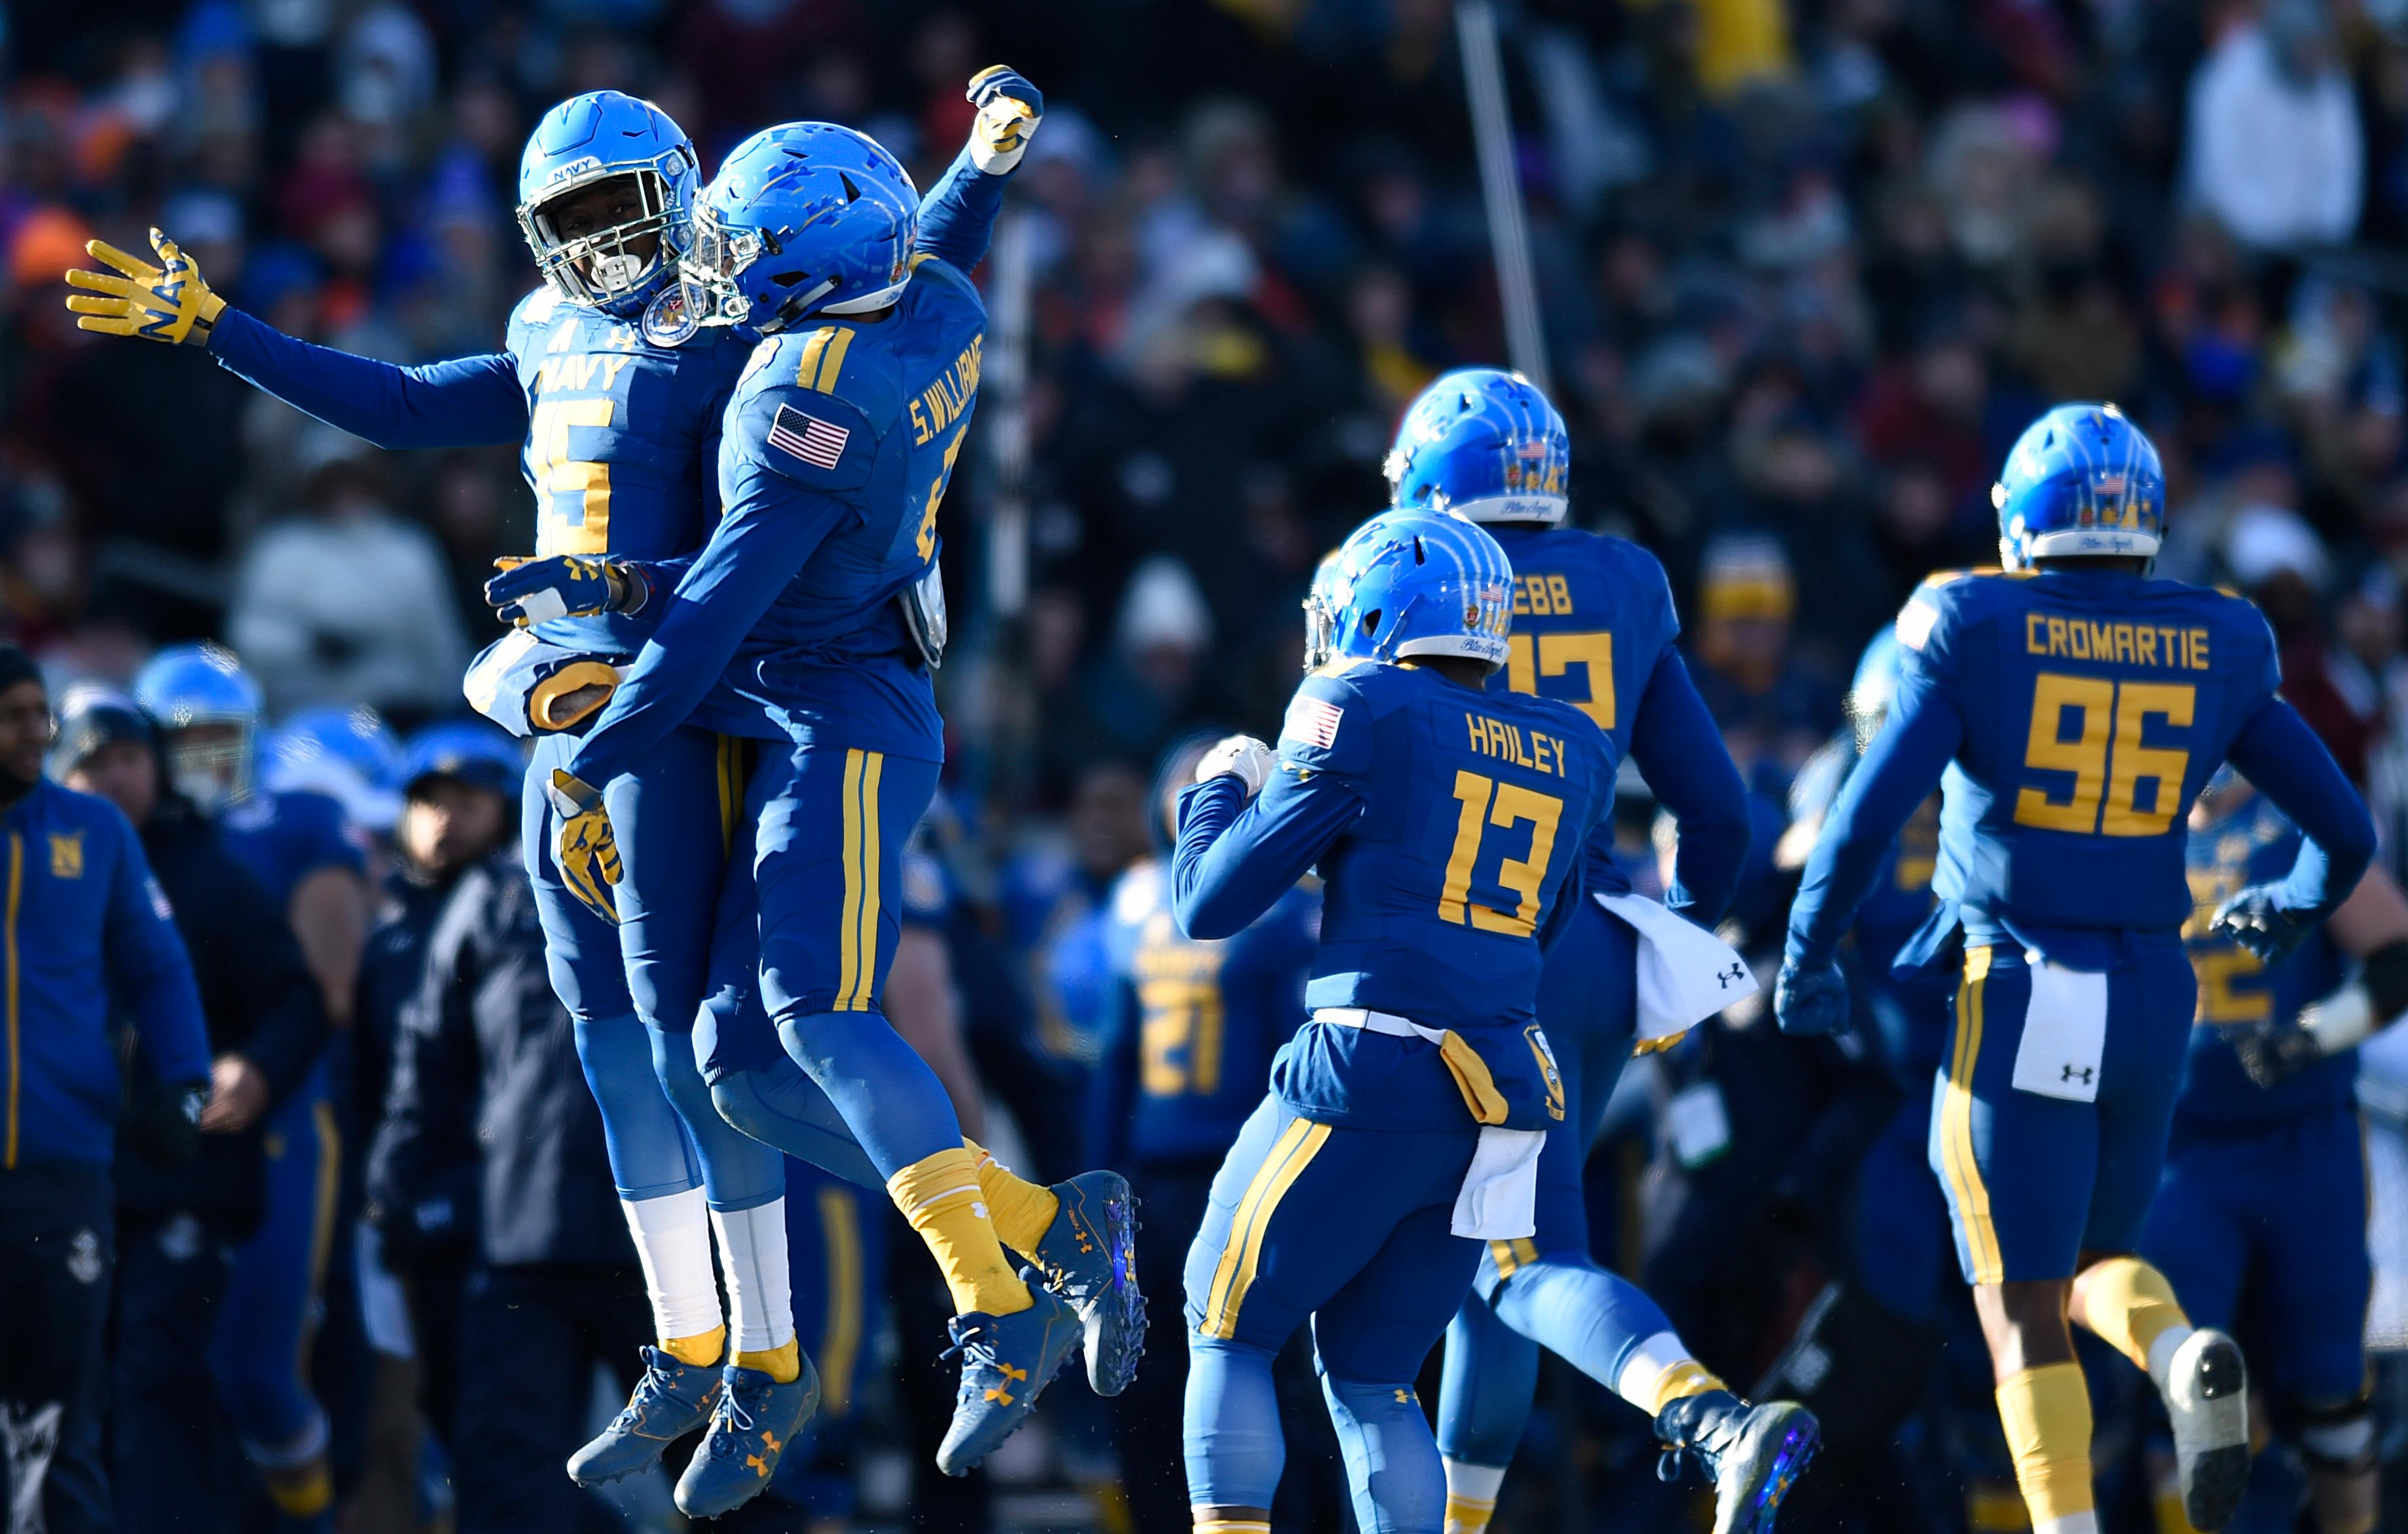 Navy's Justin Norton, left, and Sean Williams, center, jump in the air to celebrate Williams interception against Virginia in the first half of the Military Bowl NCAA college football game, Thursday, Dec. 28, 2017, in Annapolis, Md. (AP Photo/Gail Burton)